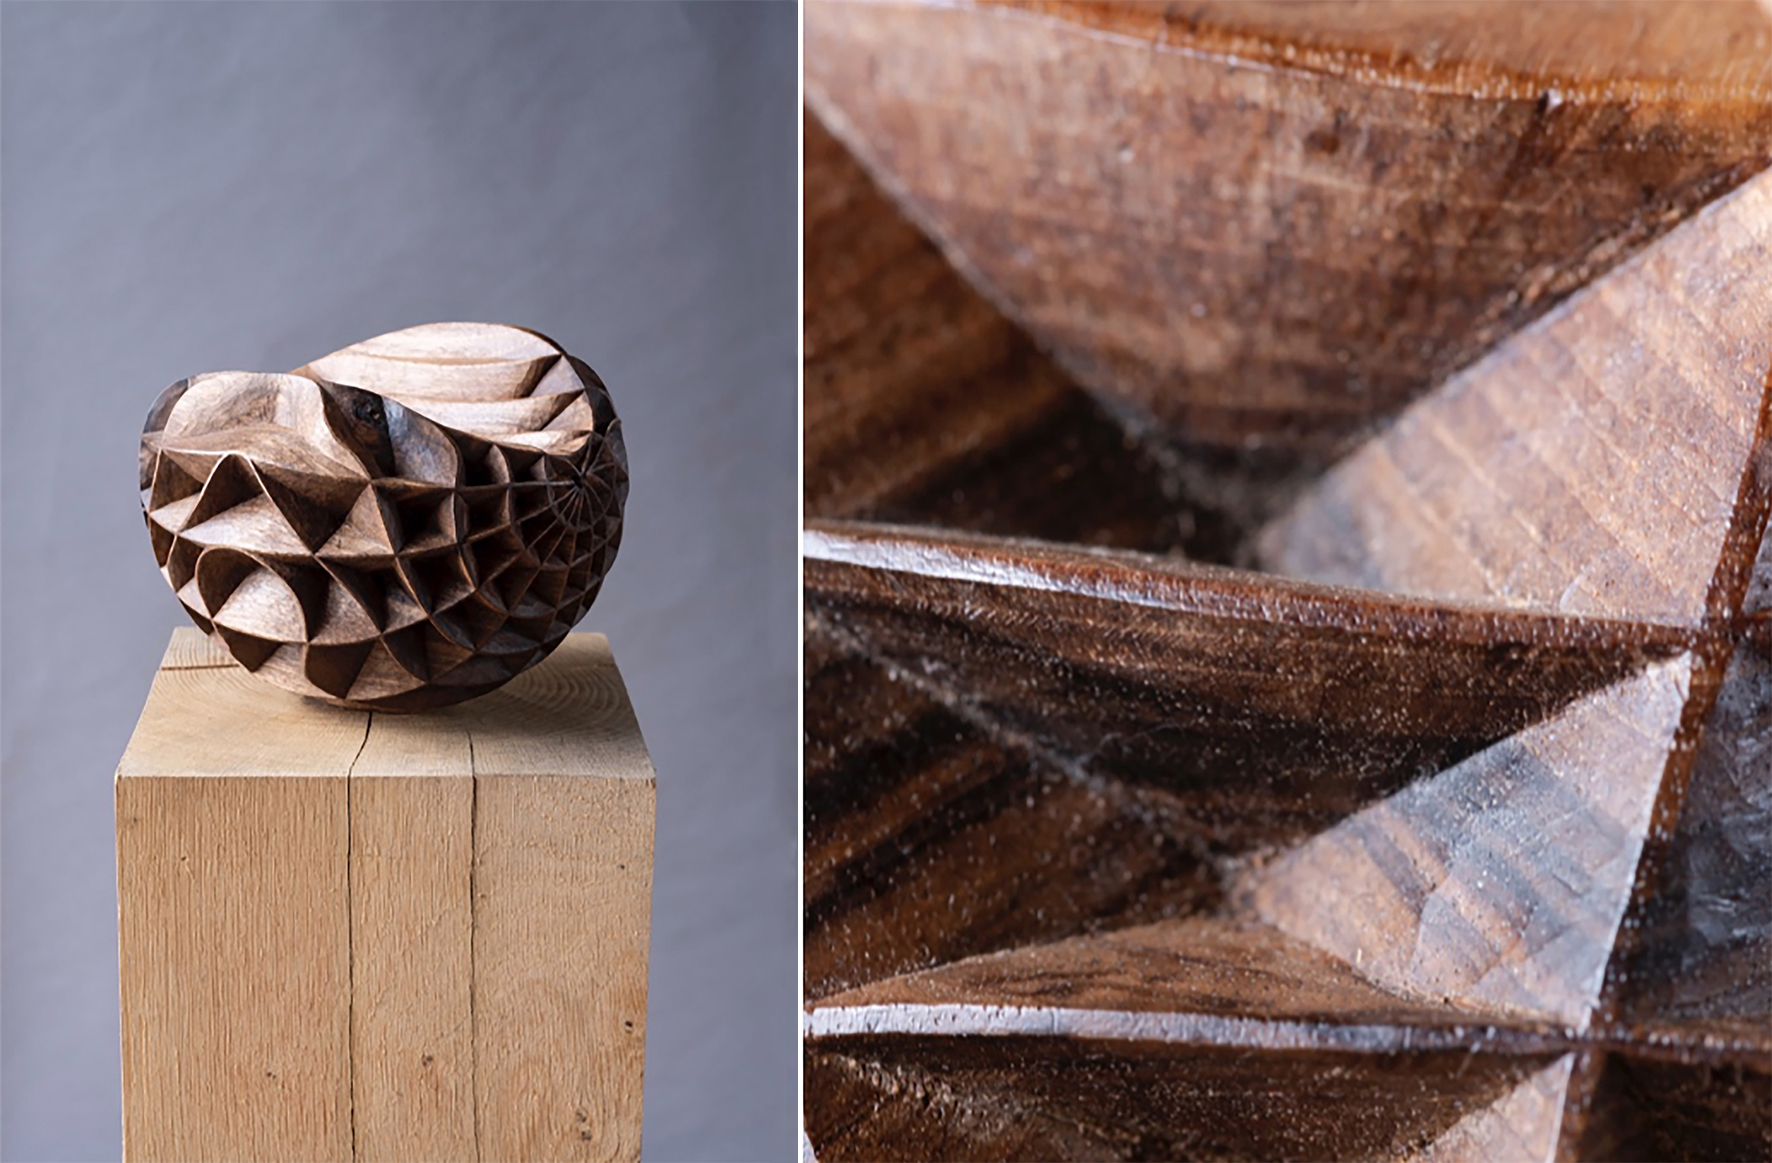 Artist: Alison Crowther   Incised Walnut II , 2018 Unseasoned English Walnut 15 W x 20 W x 20 D cm ⓒ Jacqui Hurst Alison Crowther's series of sculptures  Incised Walnut  was on display at Sarah Myerscough Gallery booth -Masterpiece London, 2019.